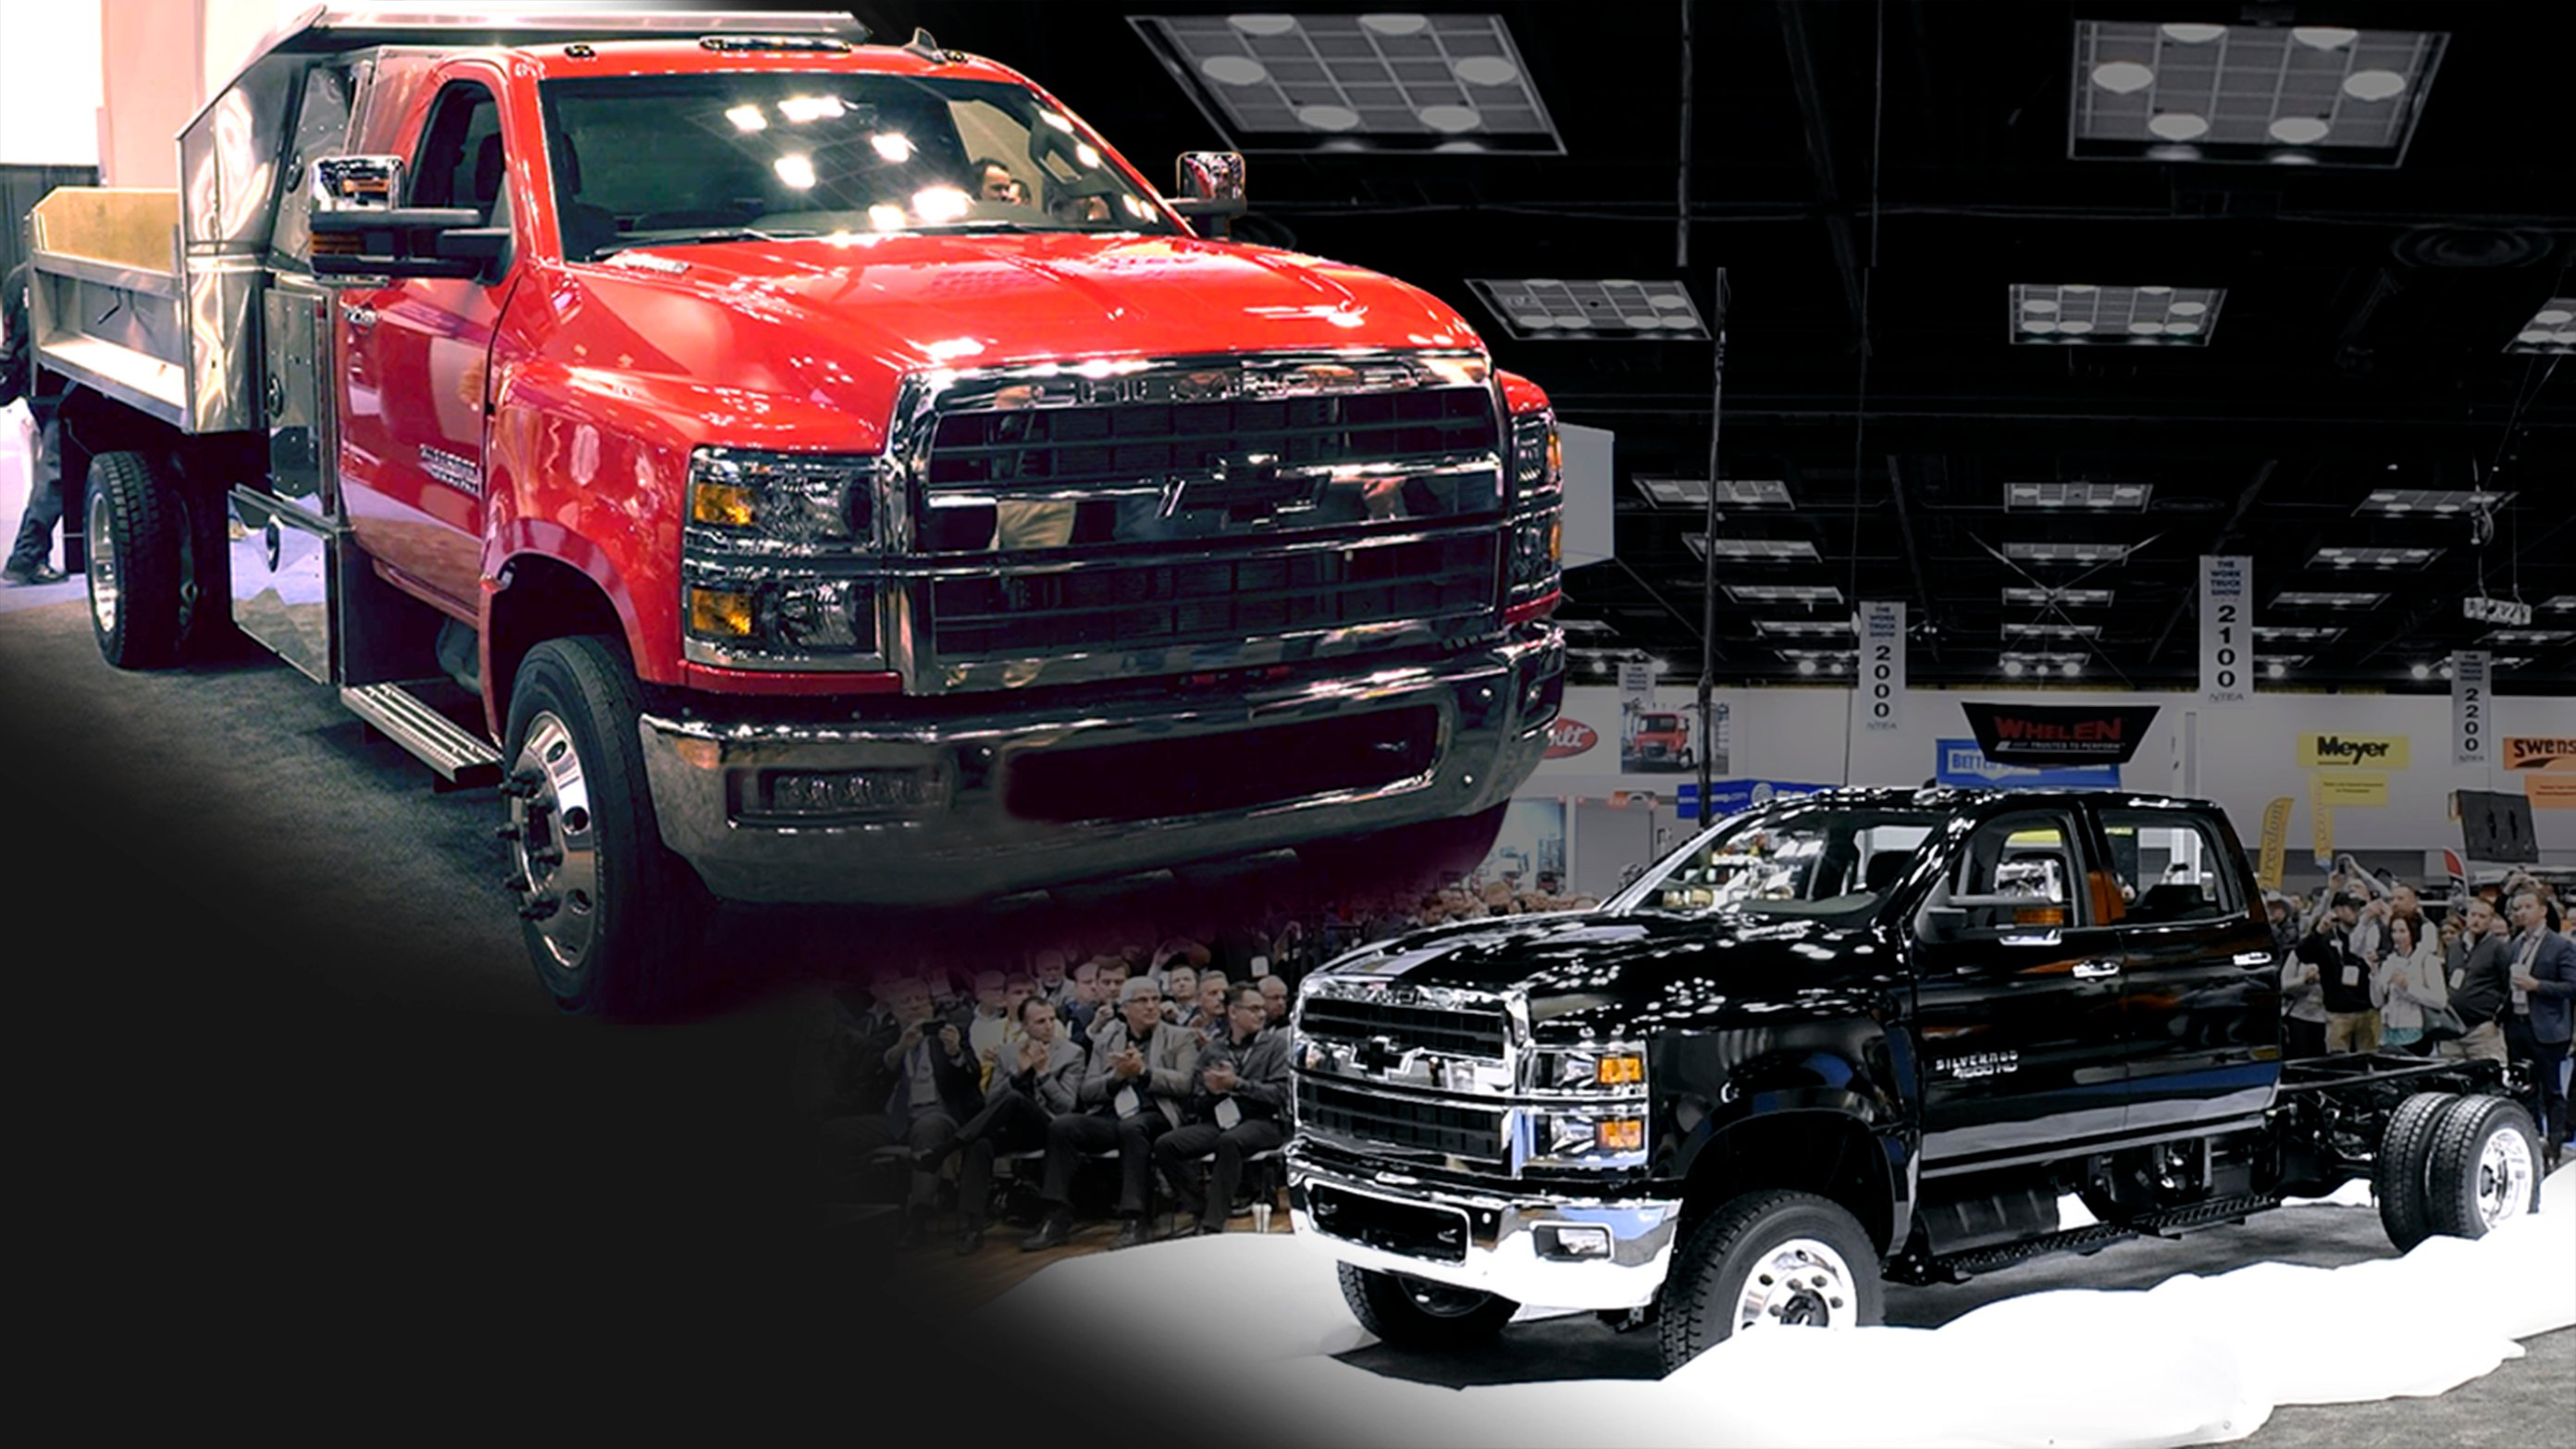 2019 Chevrolet Silverado 4500HD/6500HD Walkaround